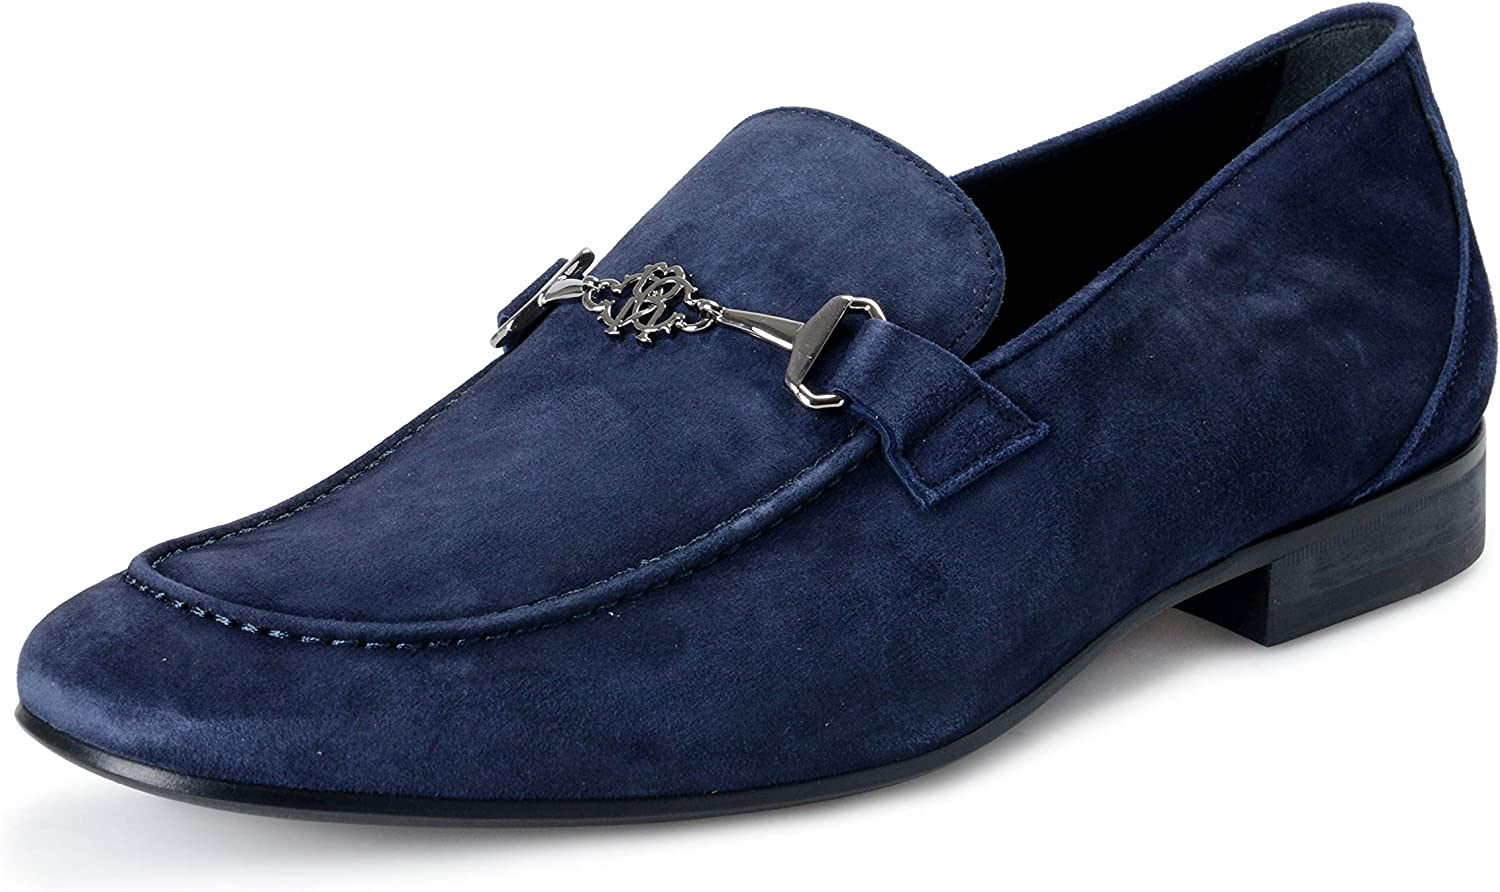 Blue Suede Leather Loafers Slip